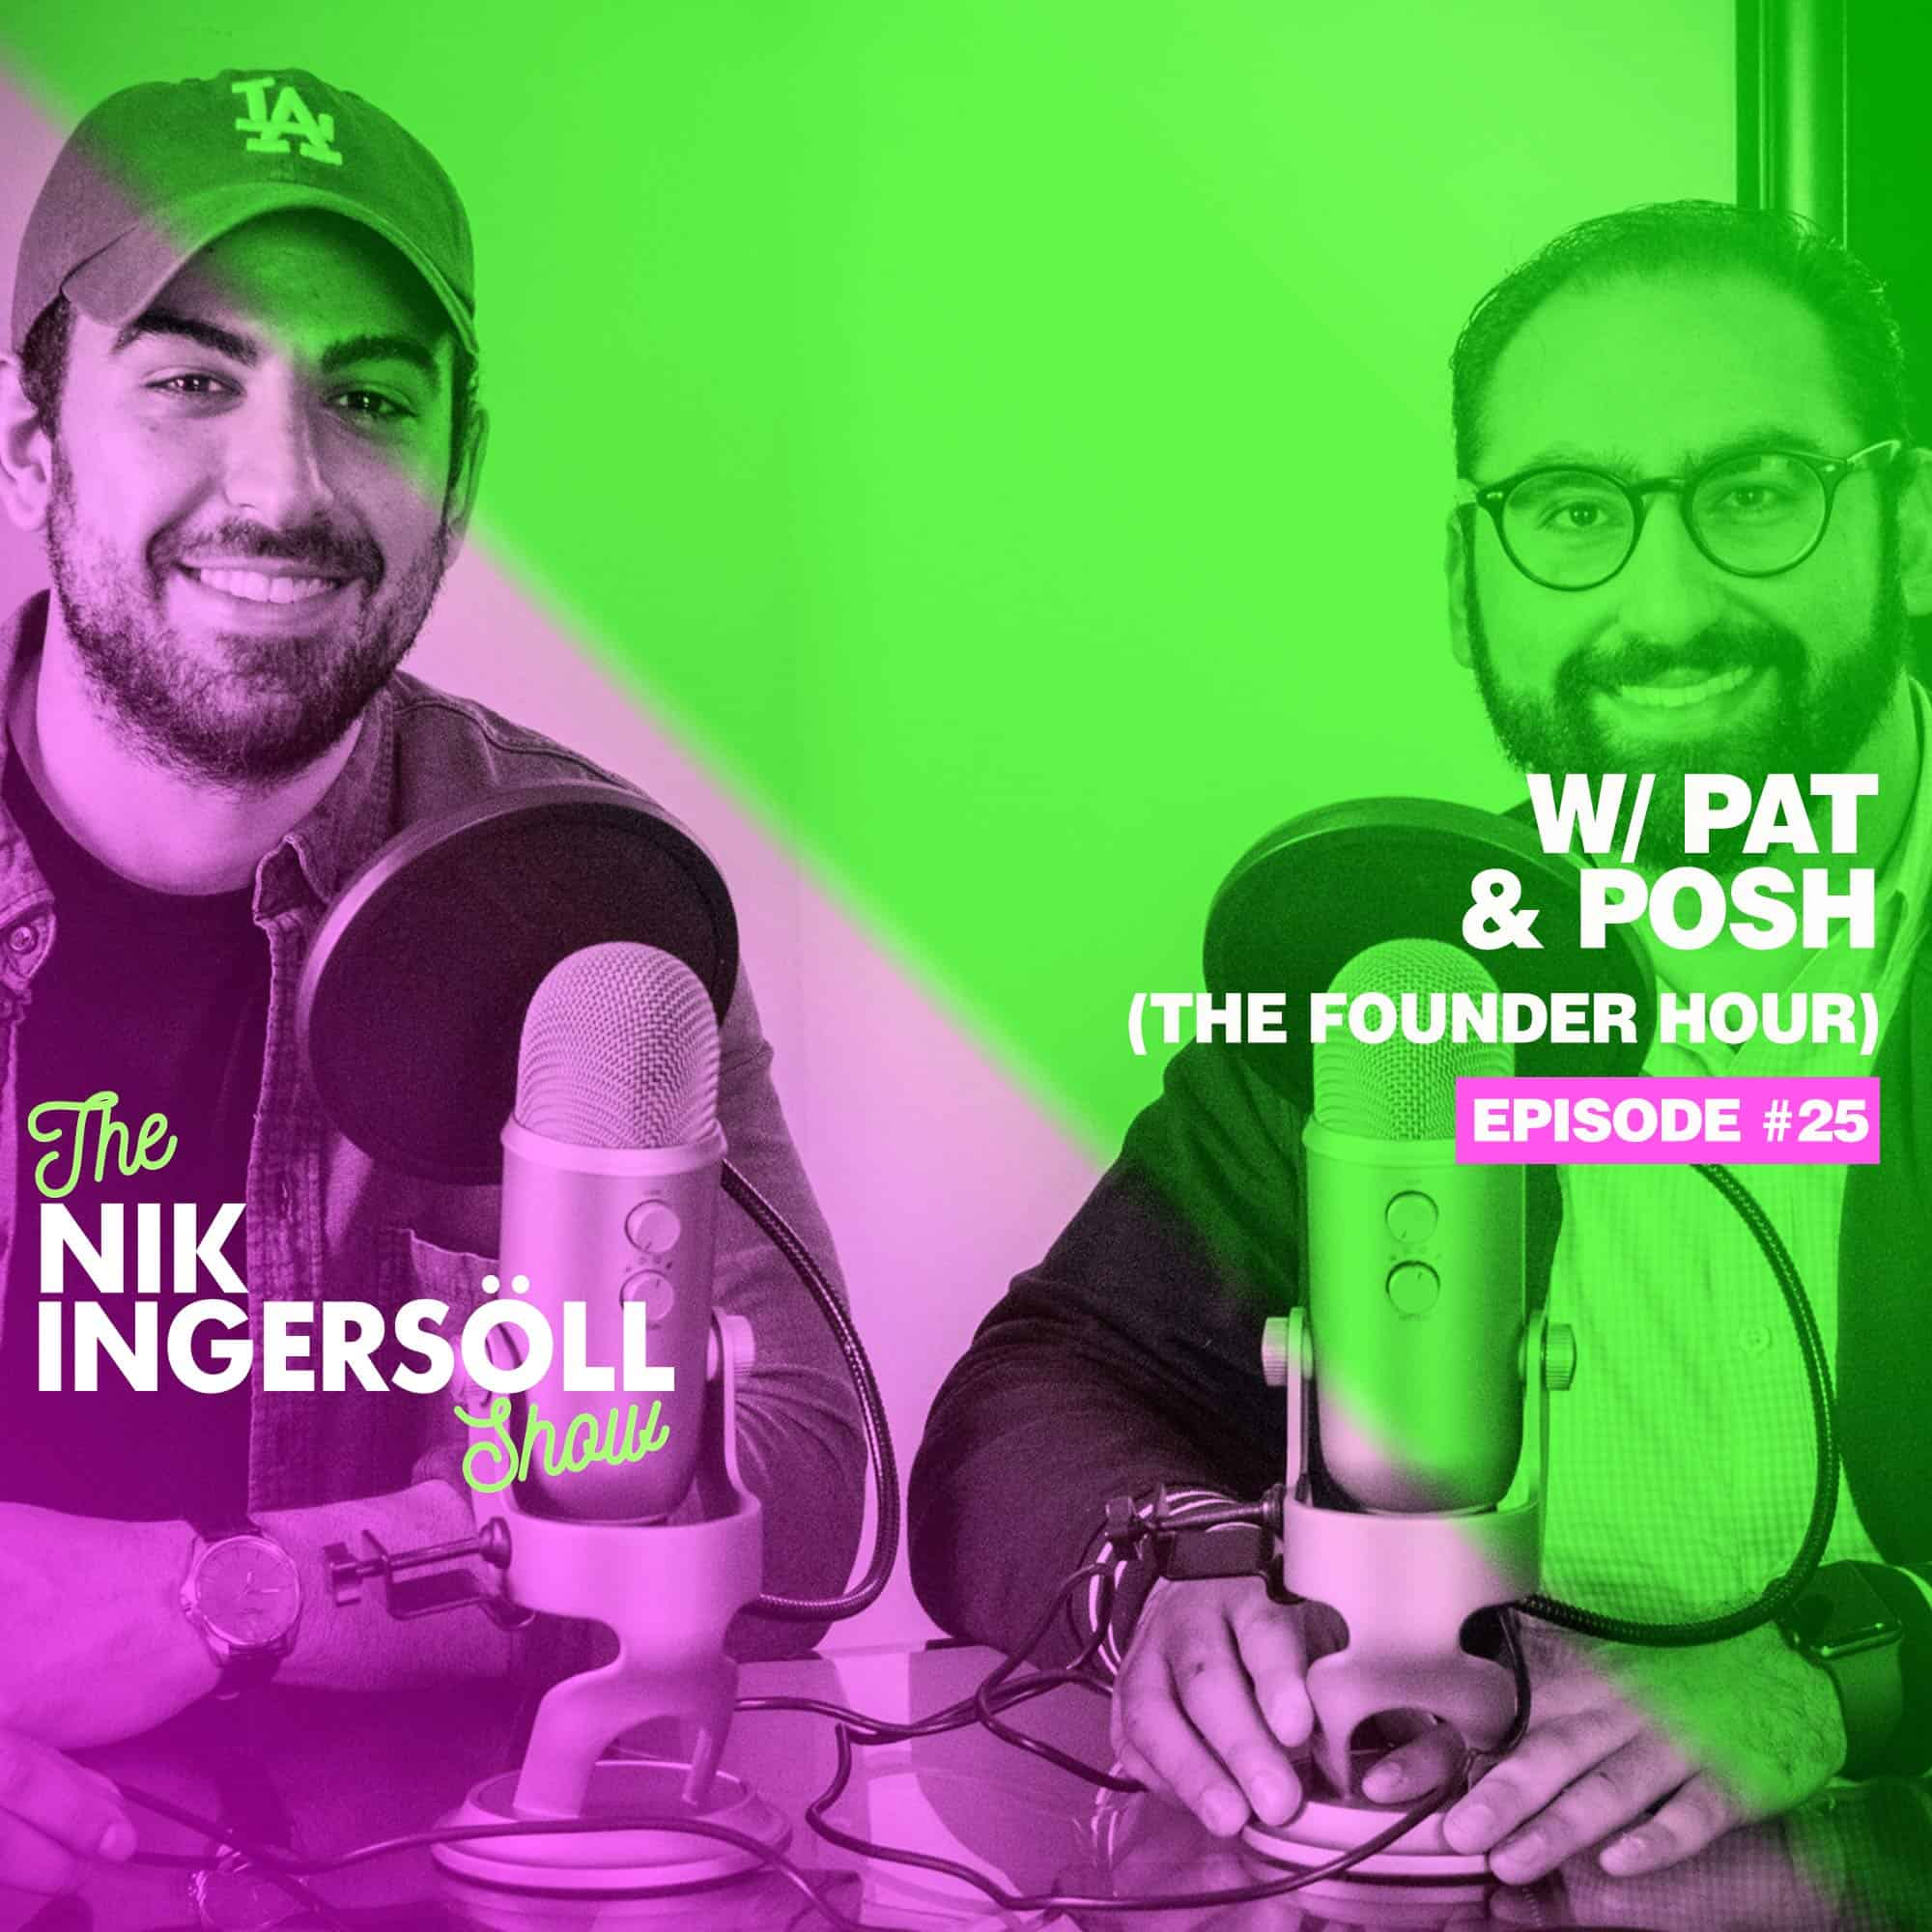 the founder hour podcast - pat & posh